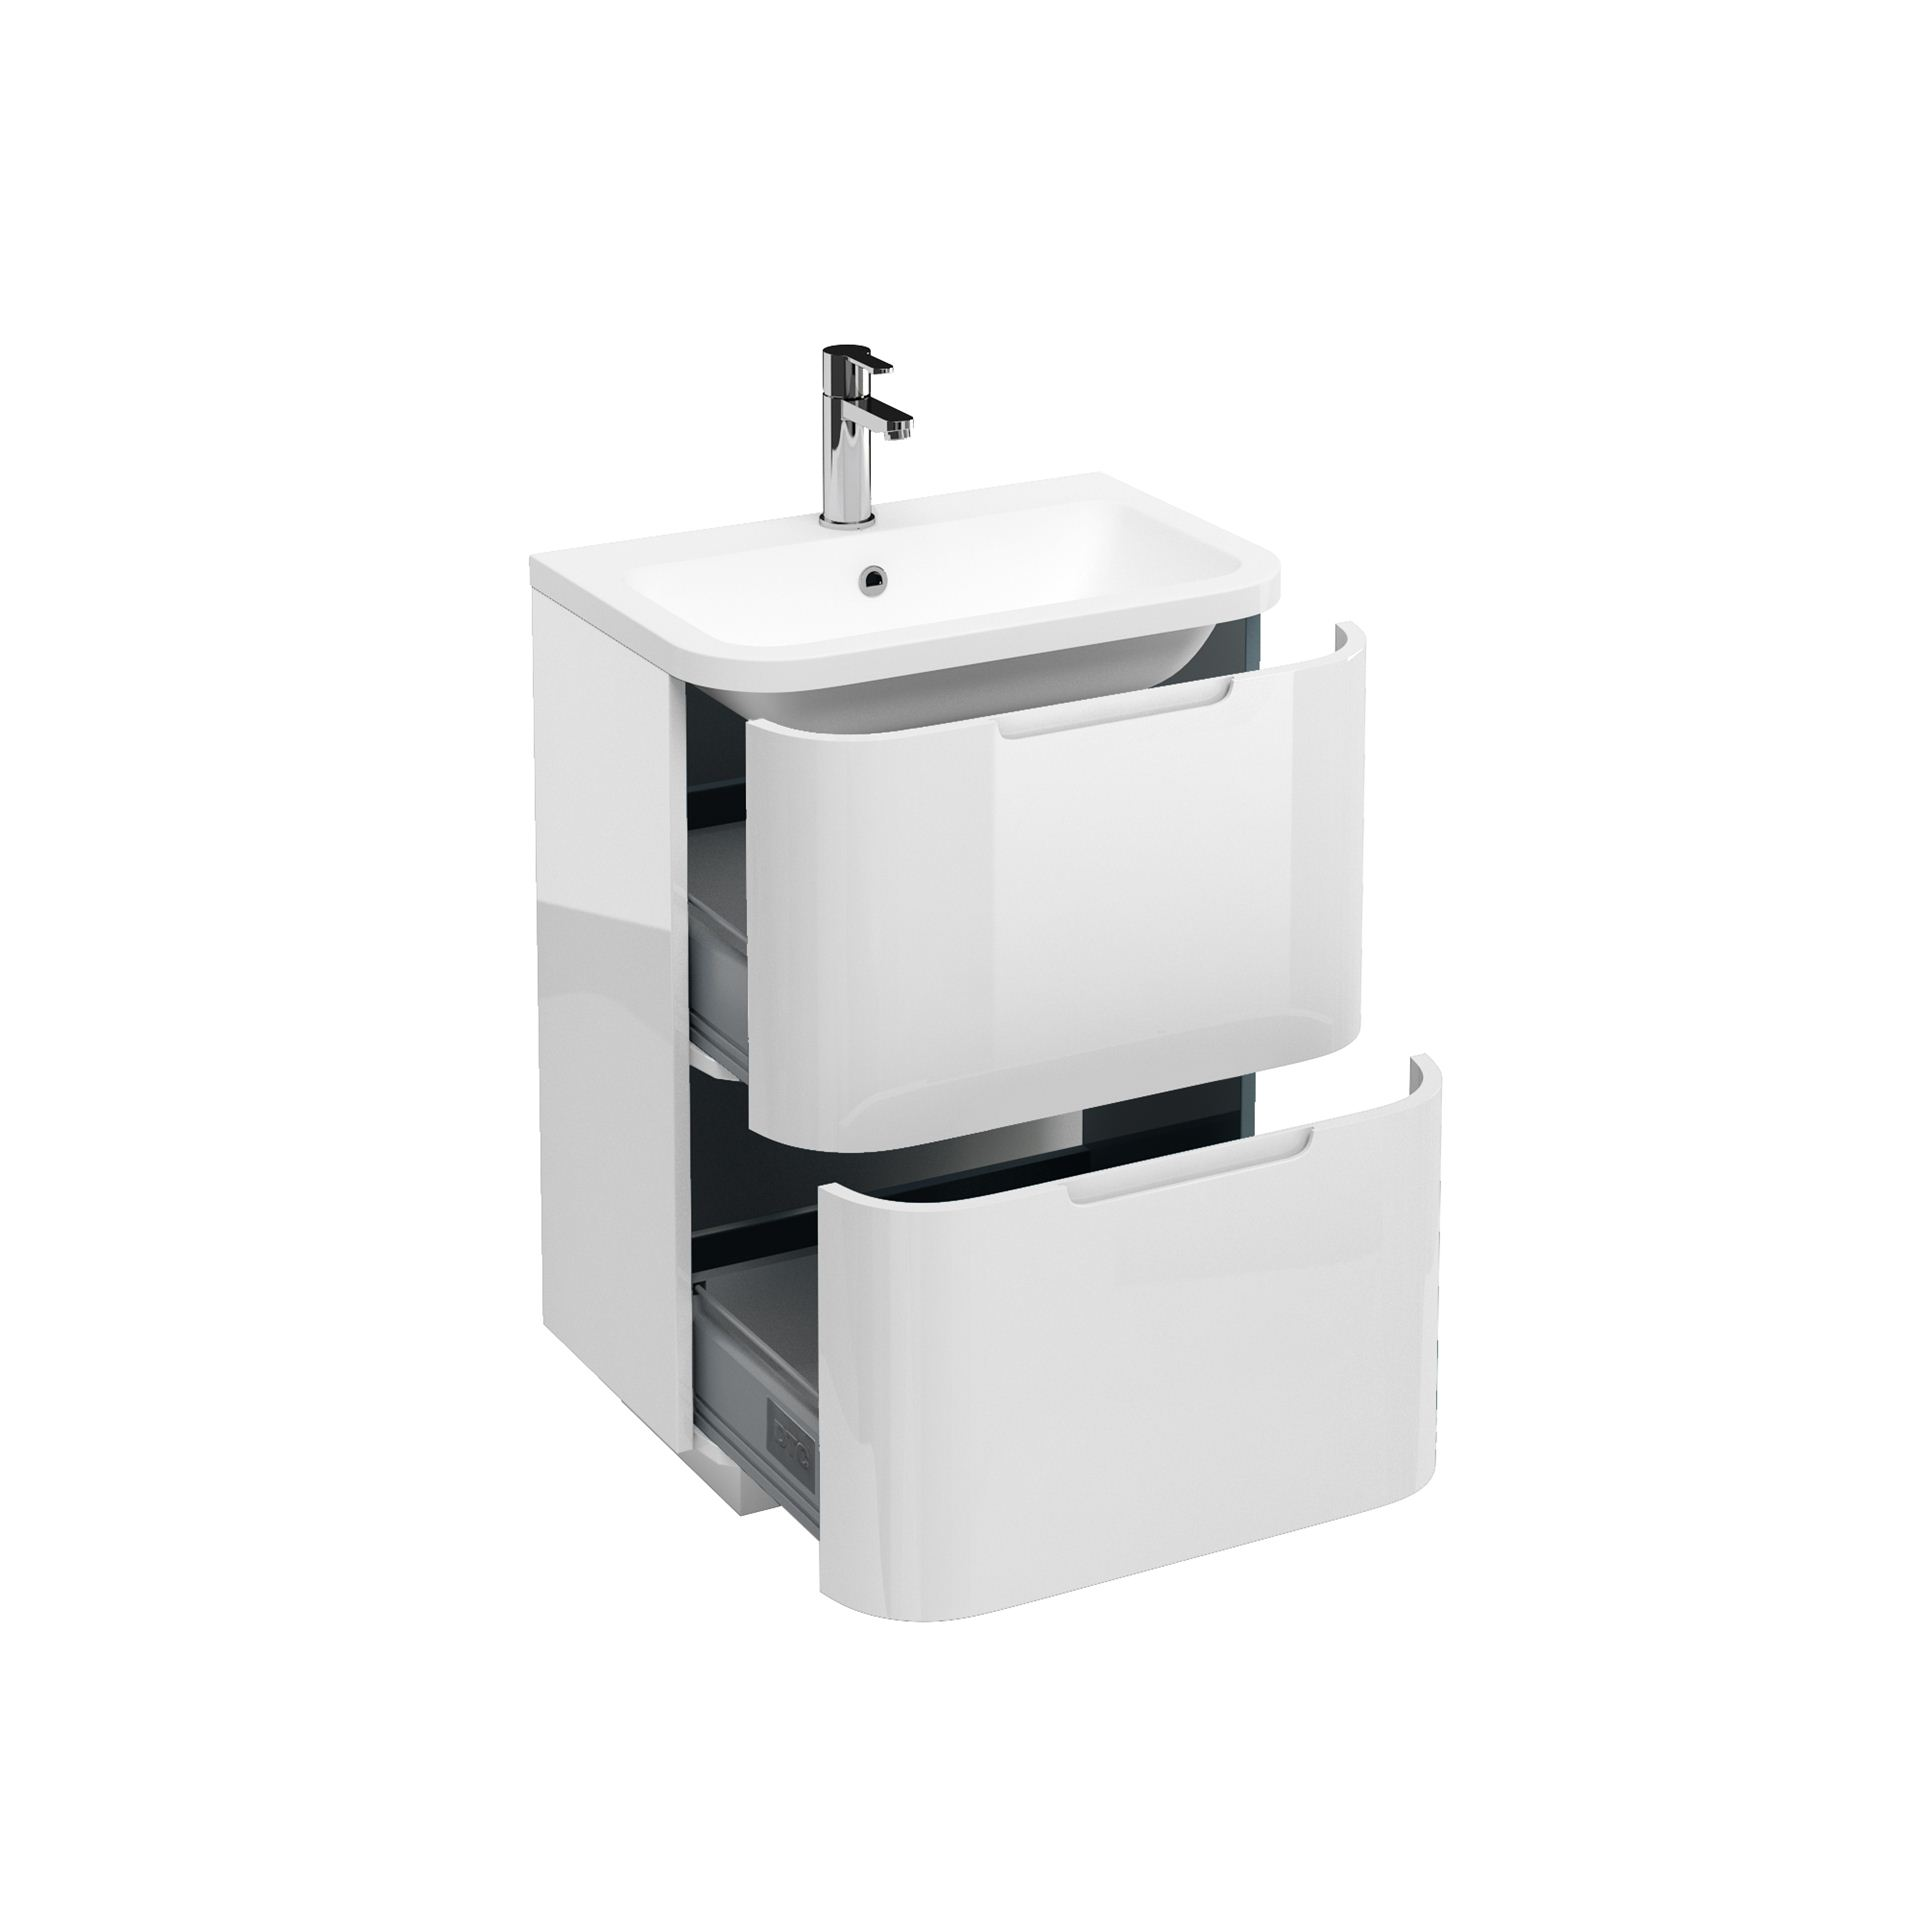 Picture Of Aqua Compact 600 Two Drawer Floor Standing Vanity Unit With 600mm Quattrocast Basin